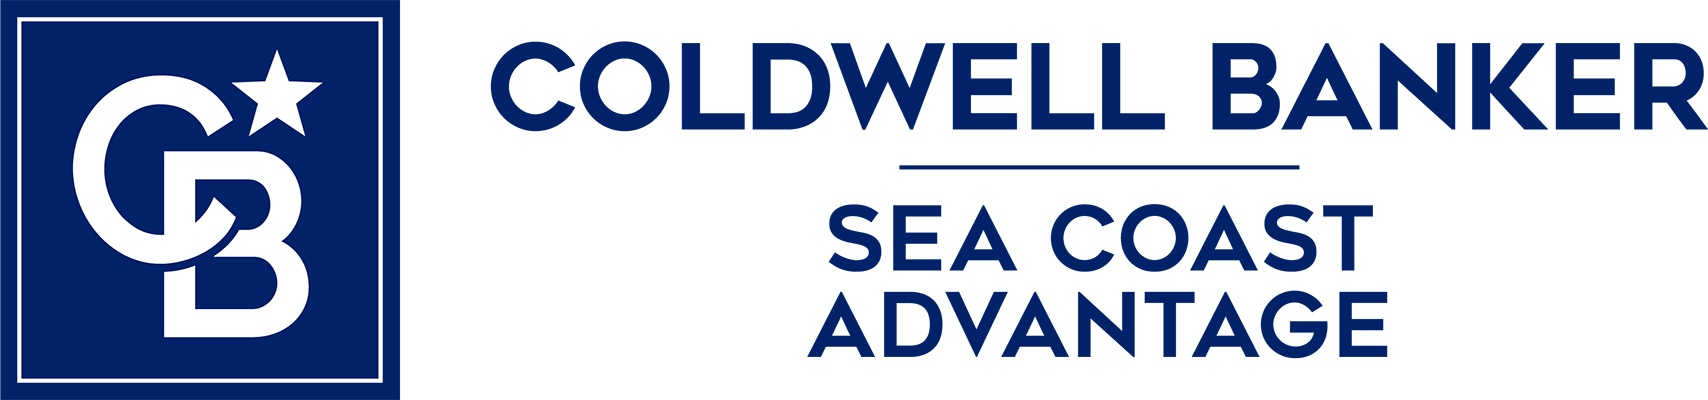 Johnny Buxani - Coldwell Banker Sea Coast Advantage Realty Logo